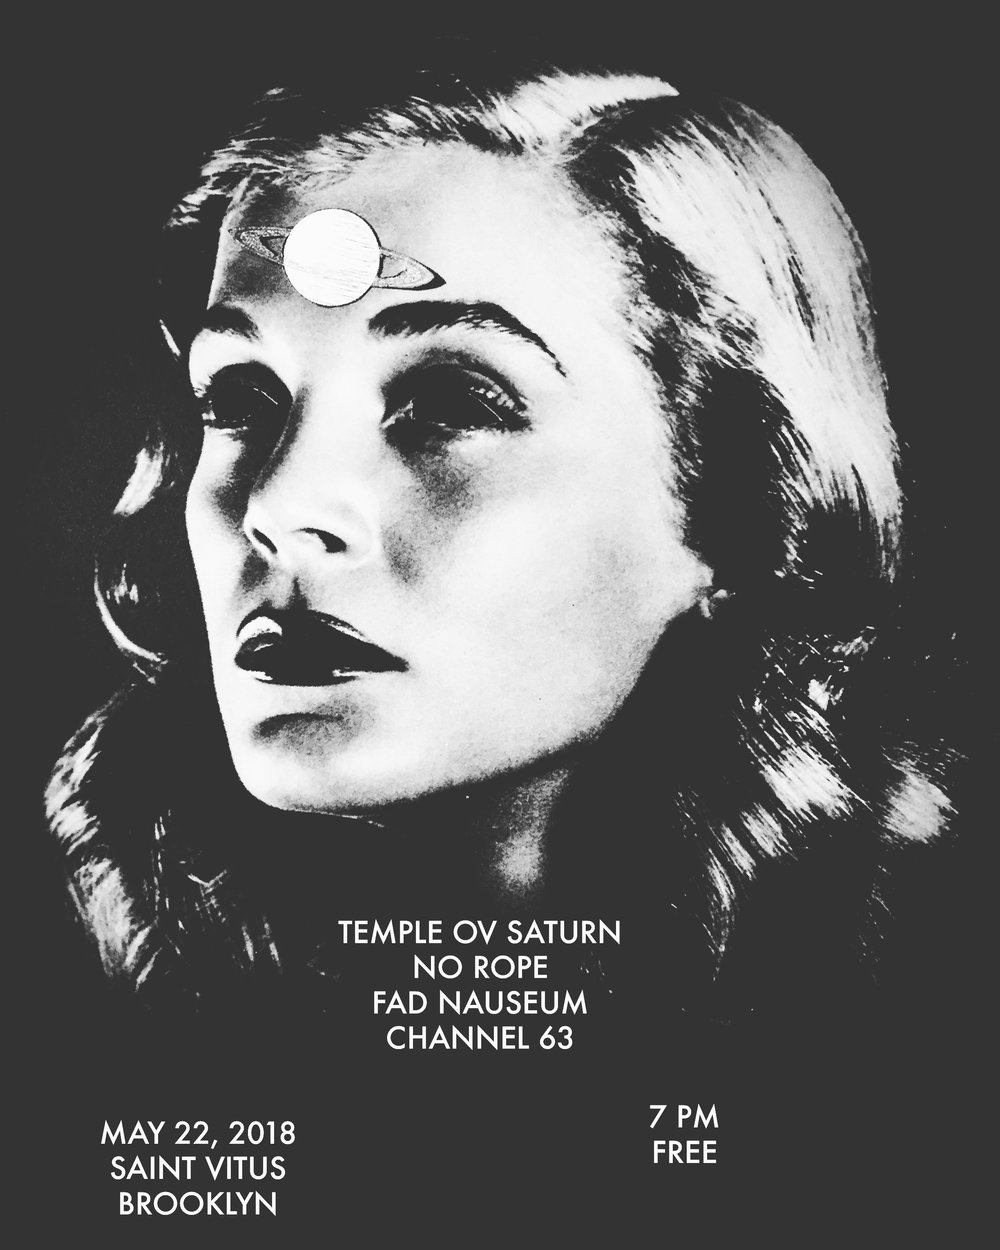 The first Temple ov Saturn show is at Saint Vitus in Brooklyn on May 22.